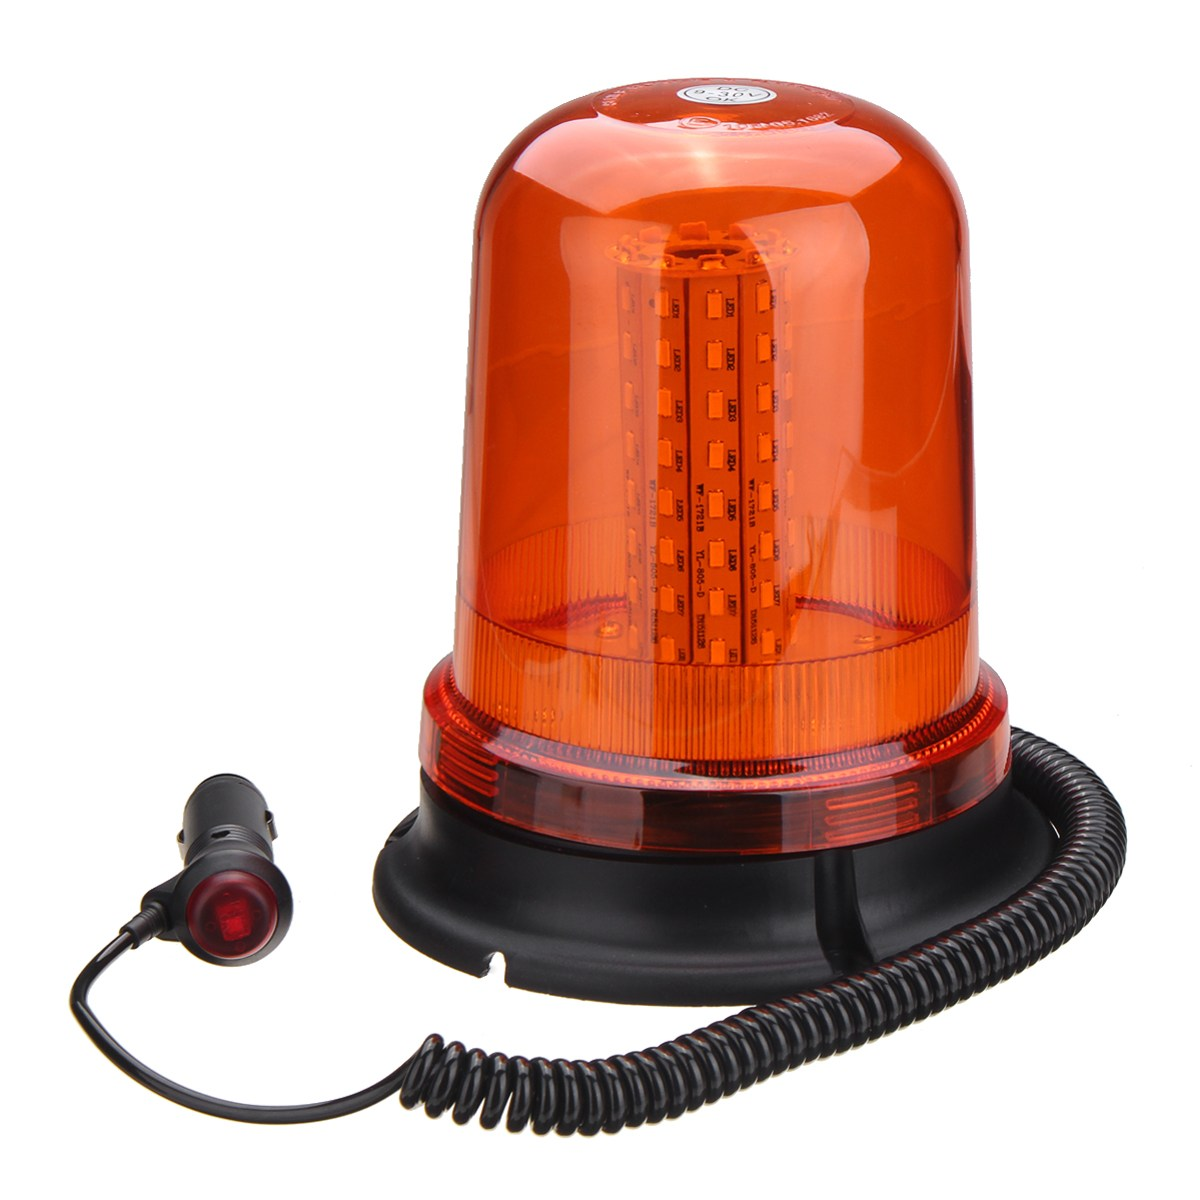 NEW 80 LED Magnetic Mount Rotating Flashing Amber Dome Beacon Recovery Warning Light Roadway Safety